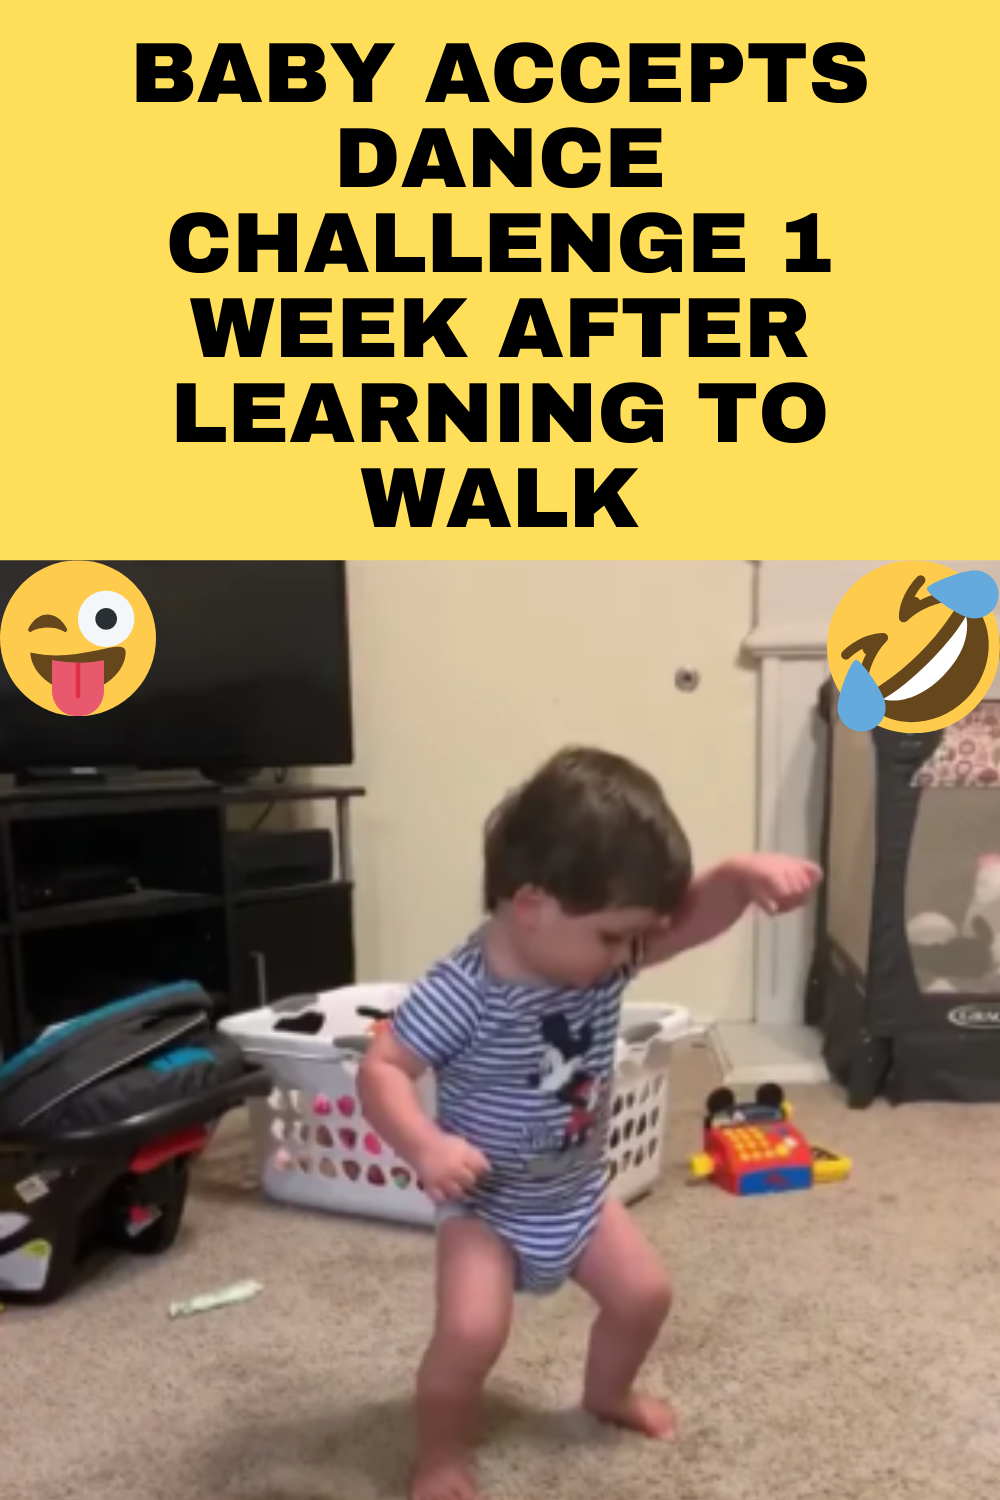 Baby Accepts Dance Challenge 1 Week After Learning To Walk